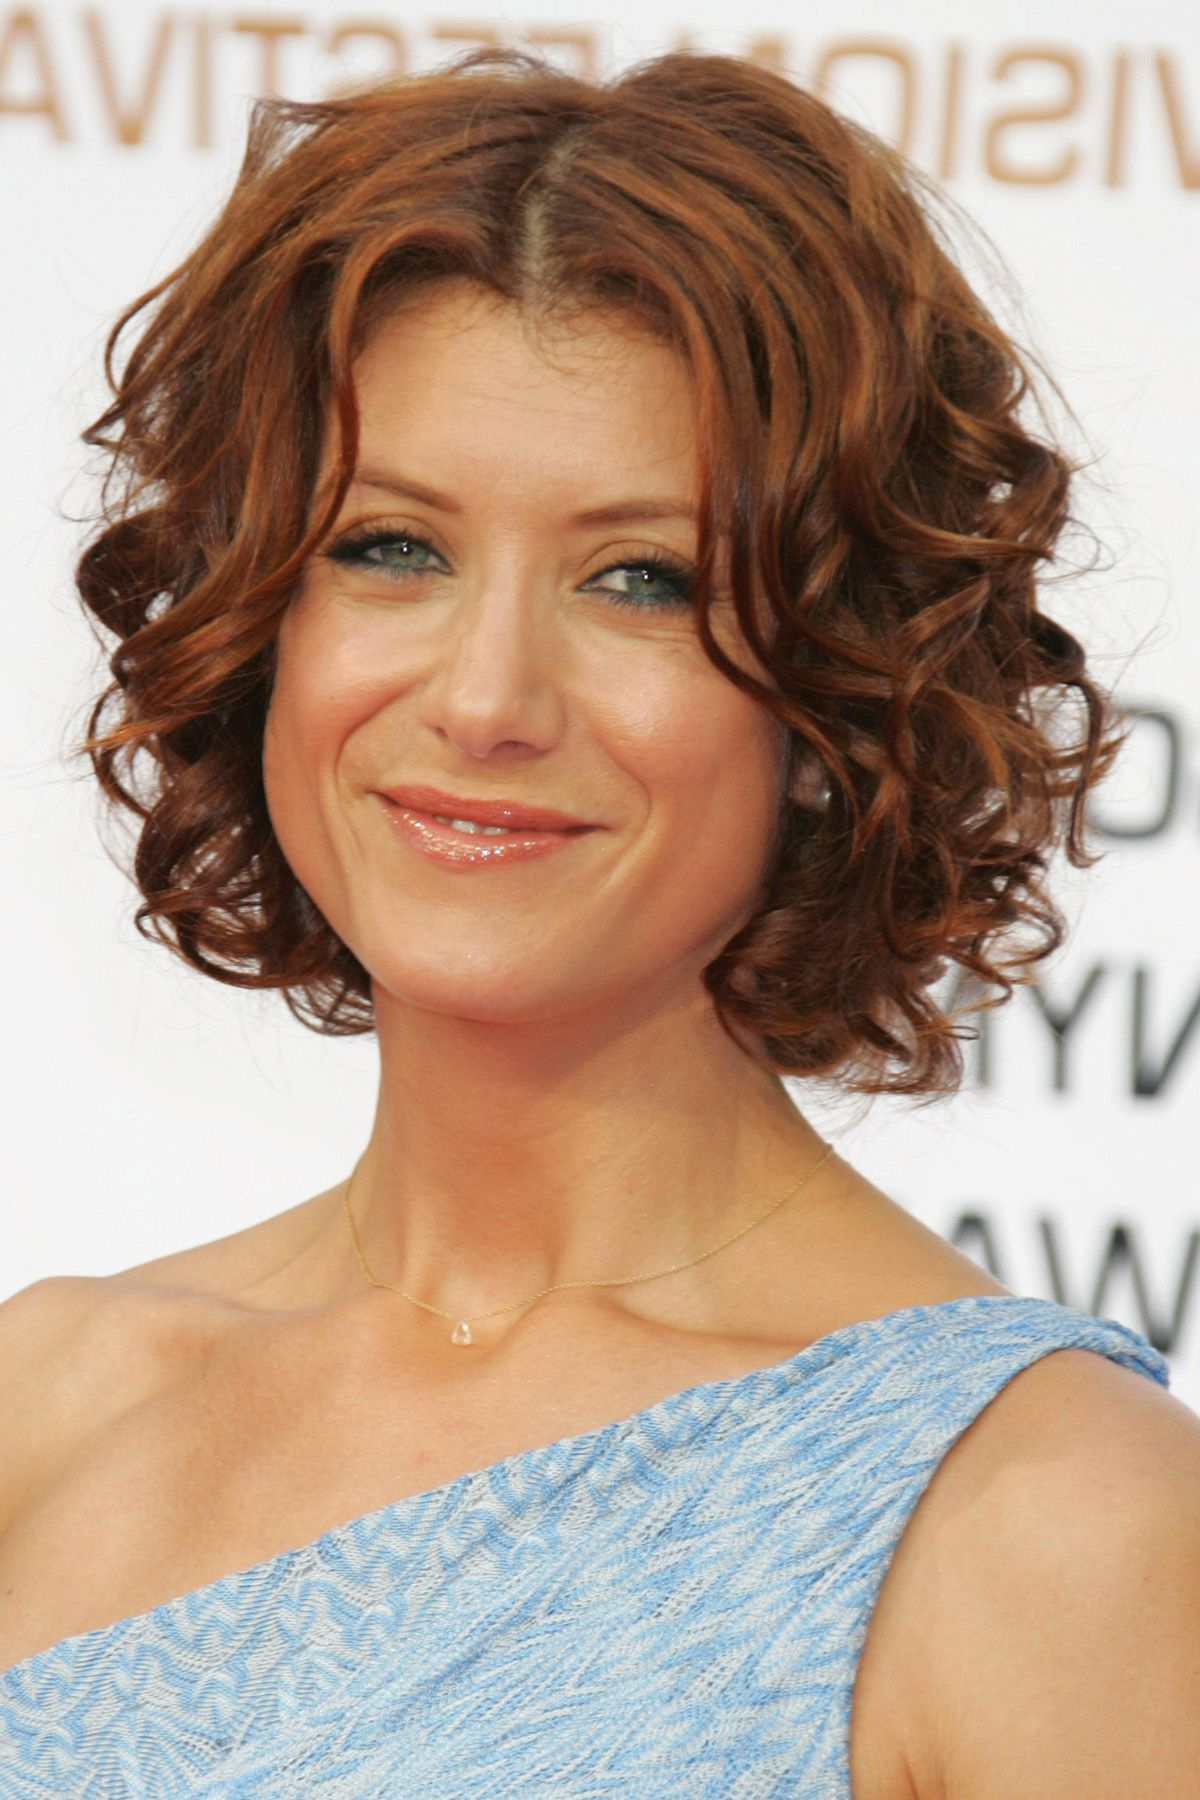 14 Best Short Curly Hairstyles For Women – Short Haircuts For Curly Hair With Regard To Edgy Short Curly Haircuts (View 3 of 25)